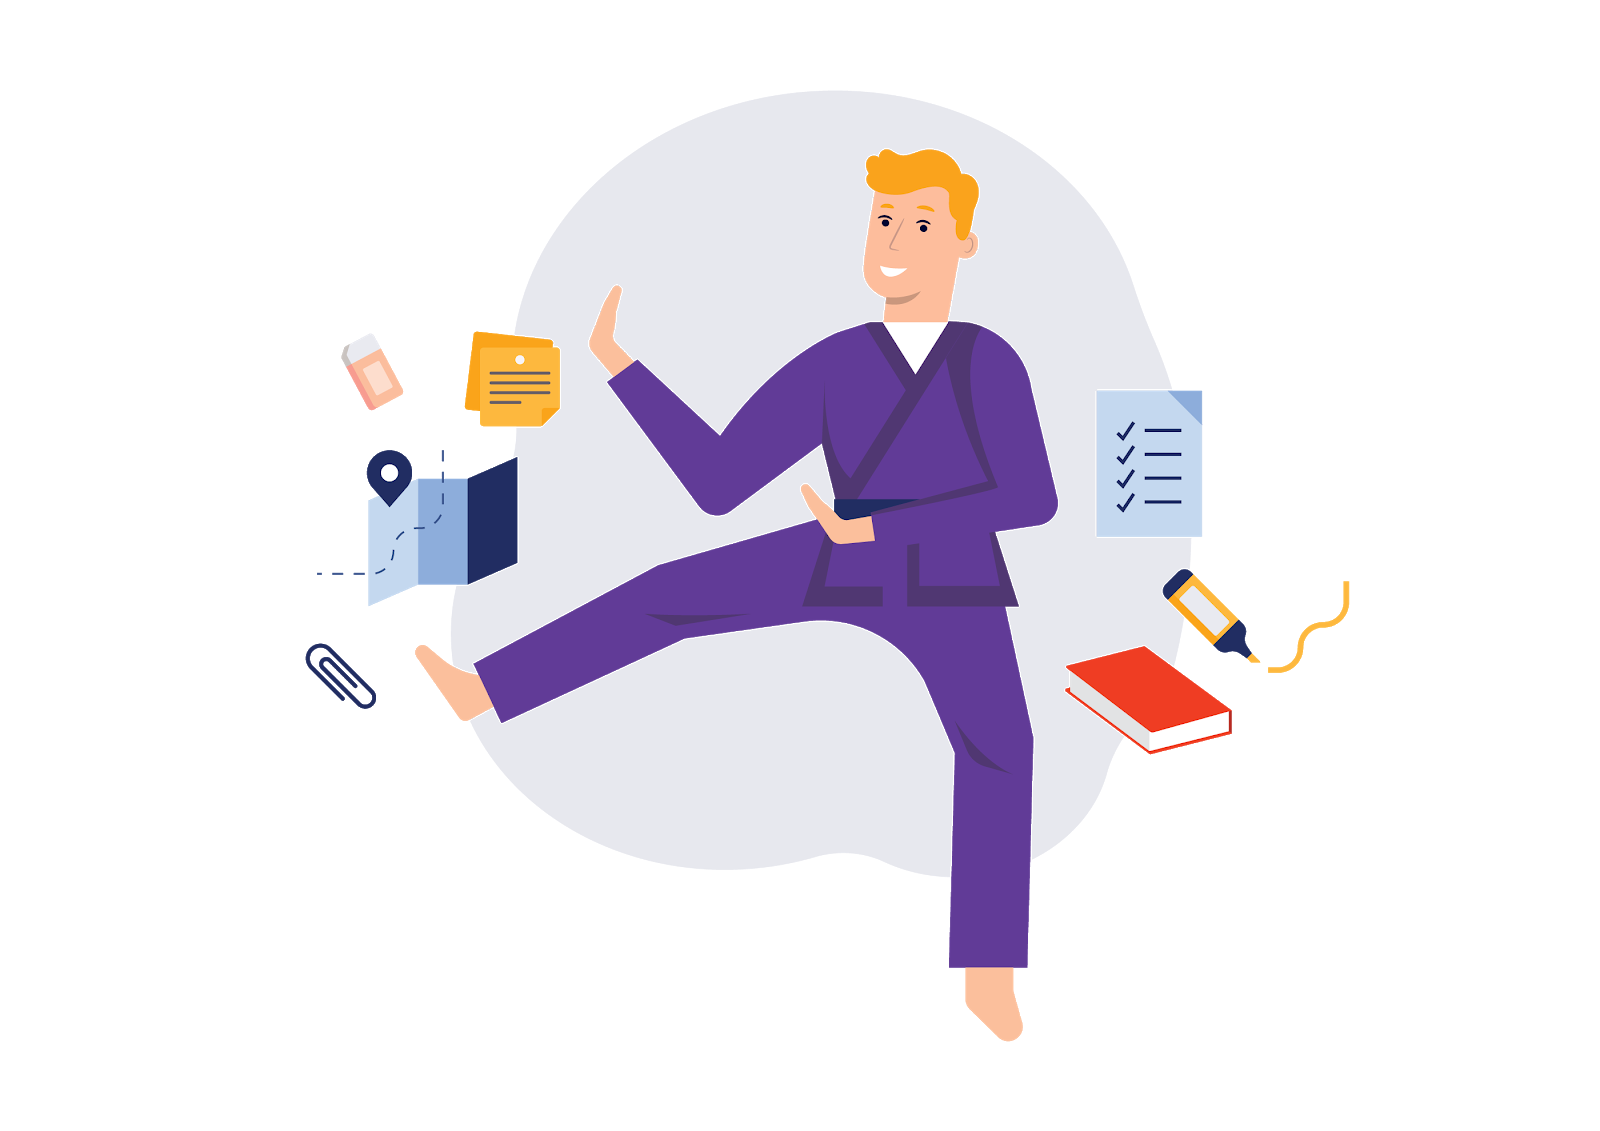 Illustration of a teacher who balances a busy workload with personal interests